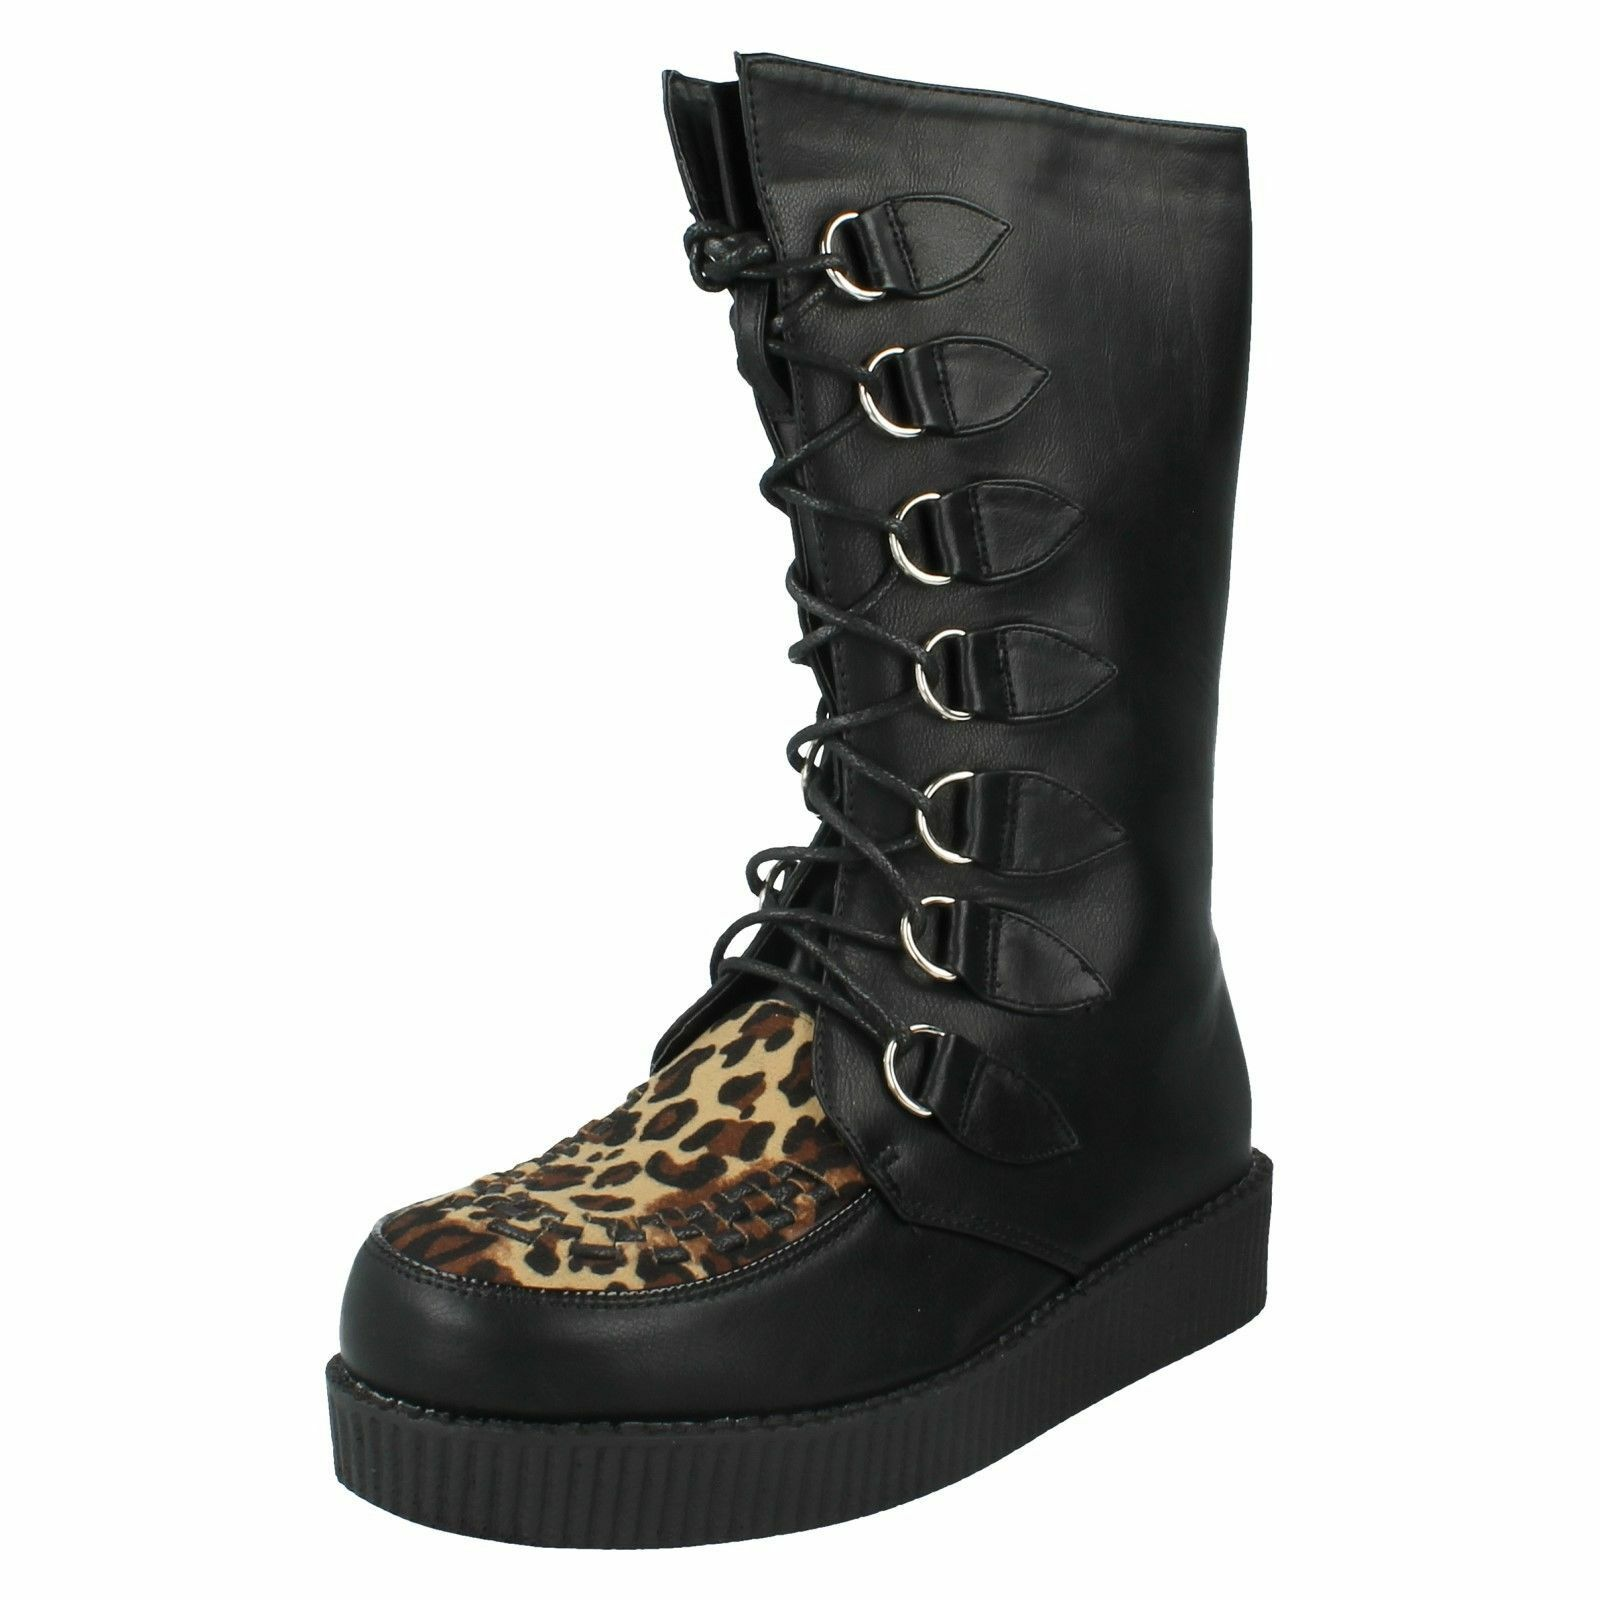 SALE Ladies Spot On black synthetic mid calf boots with leopard print F50018